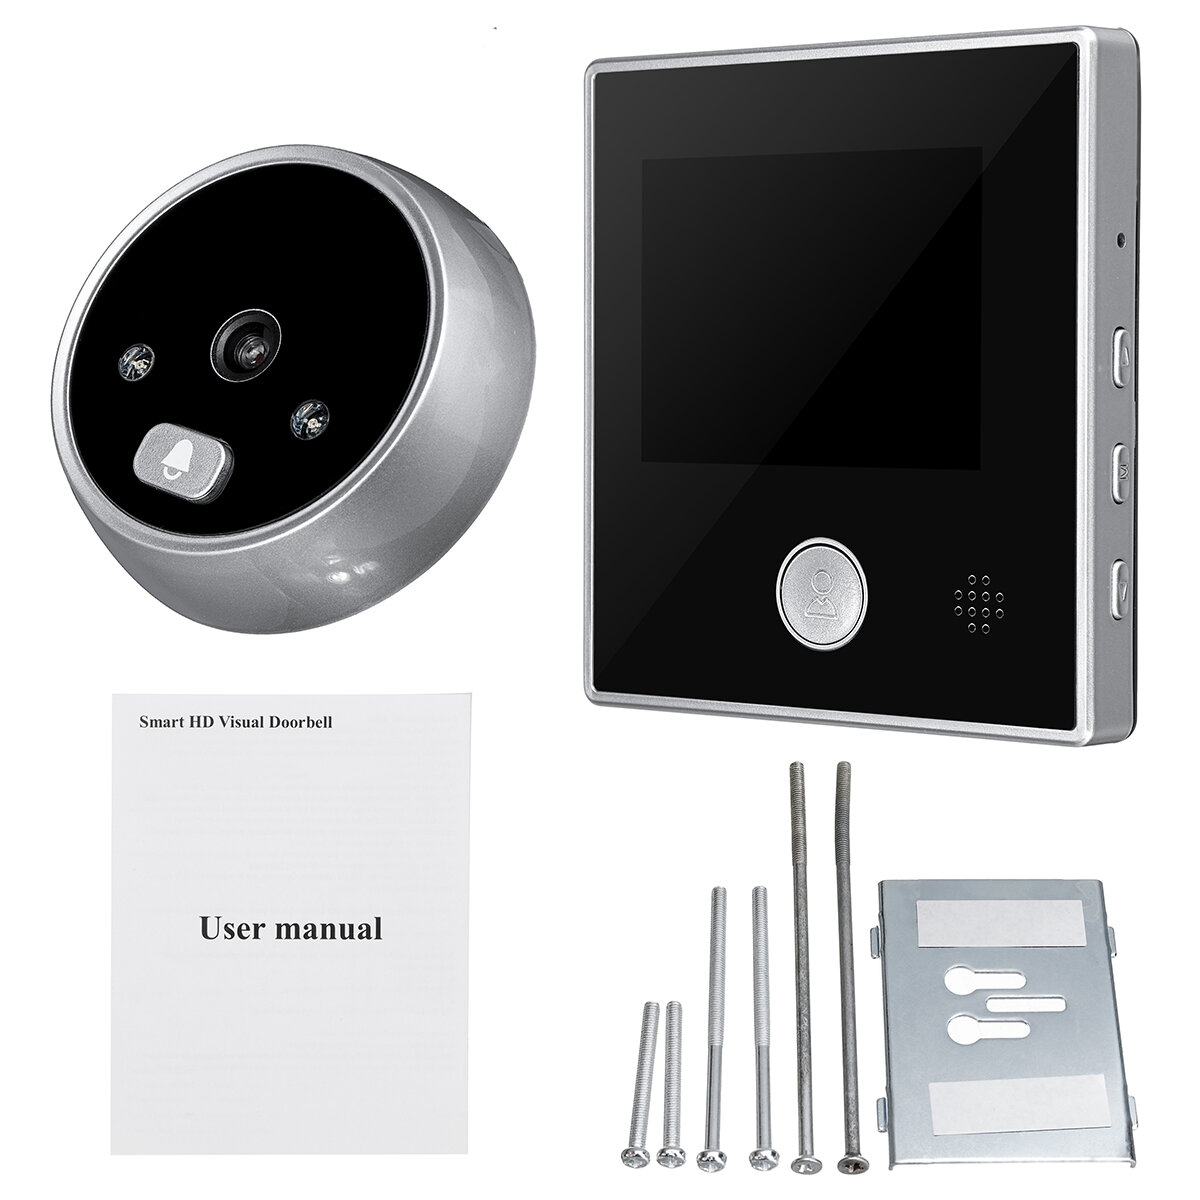 ENNIO 9 inch 2 Monitors Wifi Wireless Fingerprint RFID Video Door Phone Doorbell Intercom System with Wired AHD 1080P Door Access Control System,Support Remote APP Unlocking,Recording - 1